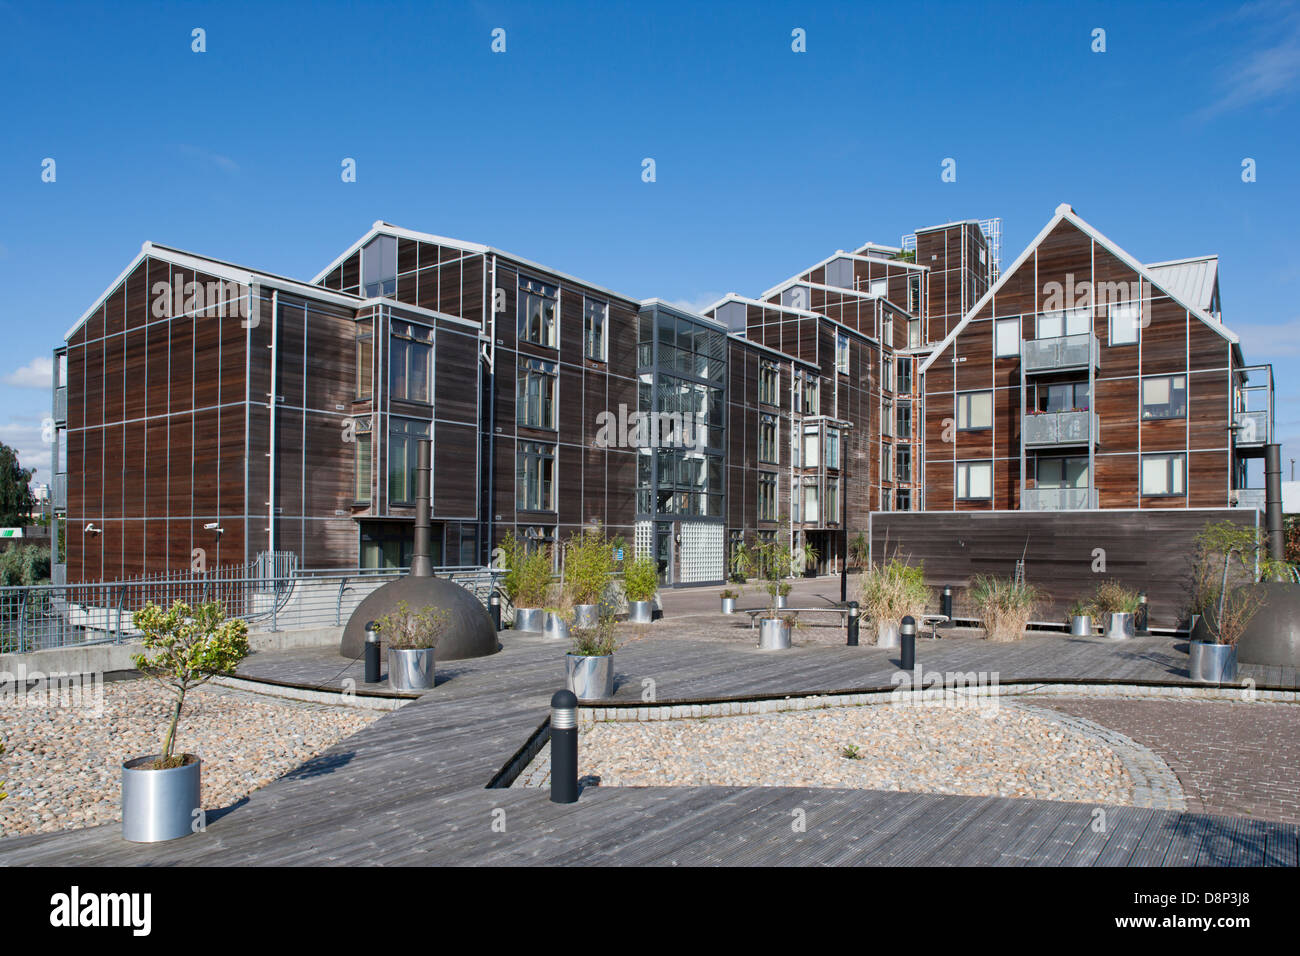 Island House Three Mills Lane Bromley By Bow - Stock Image